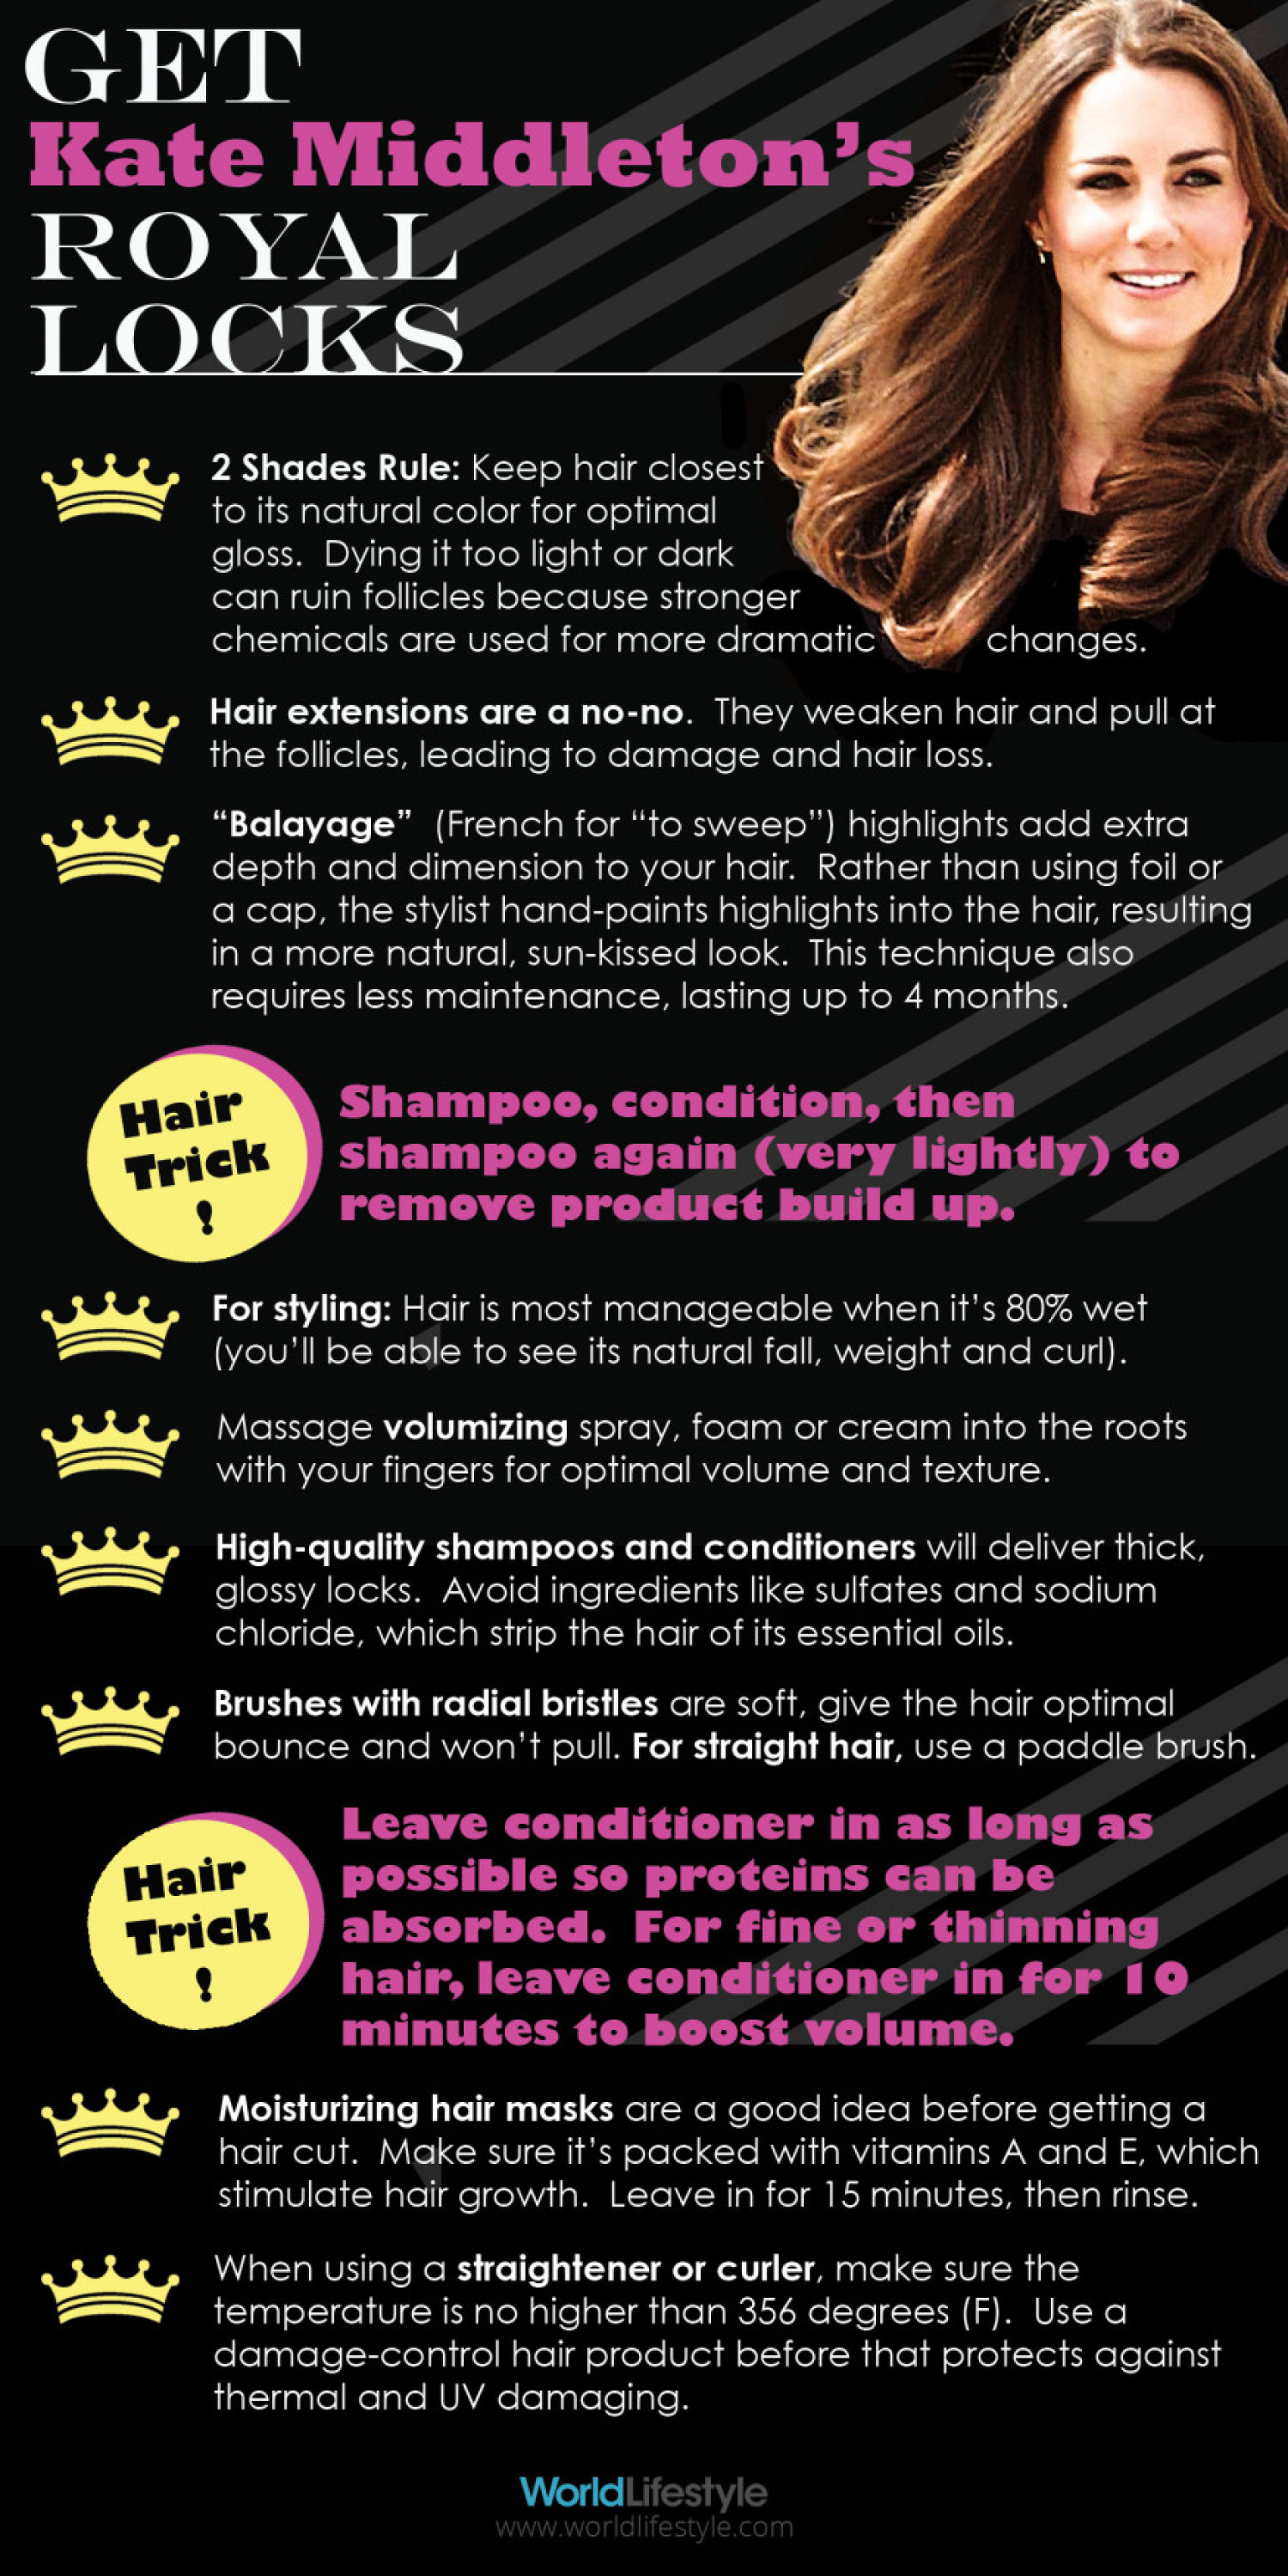 How to Get Kate Middleton's Hair Infographic